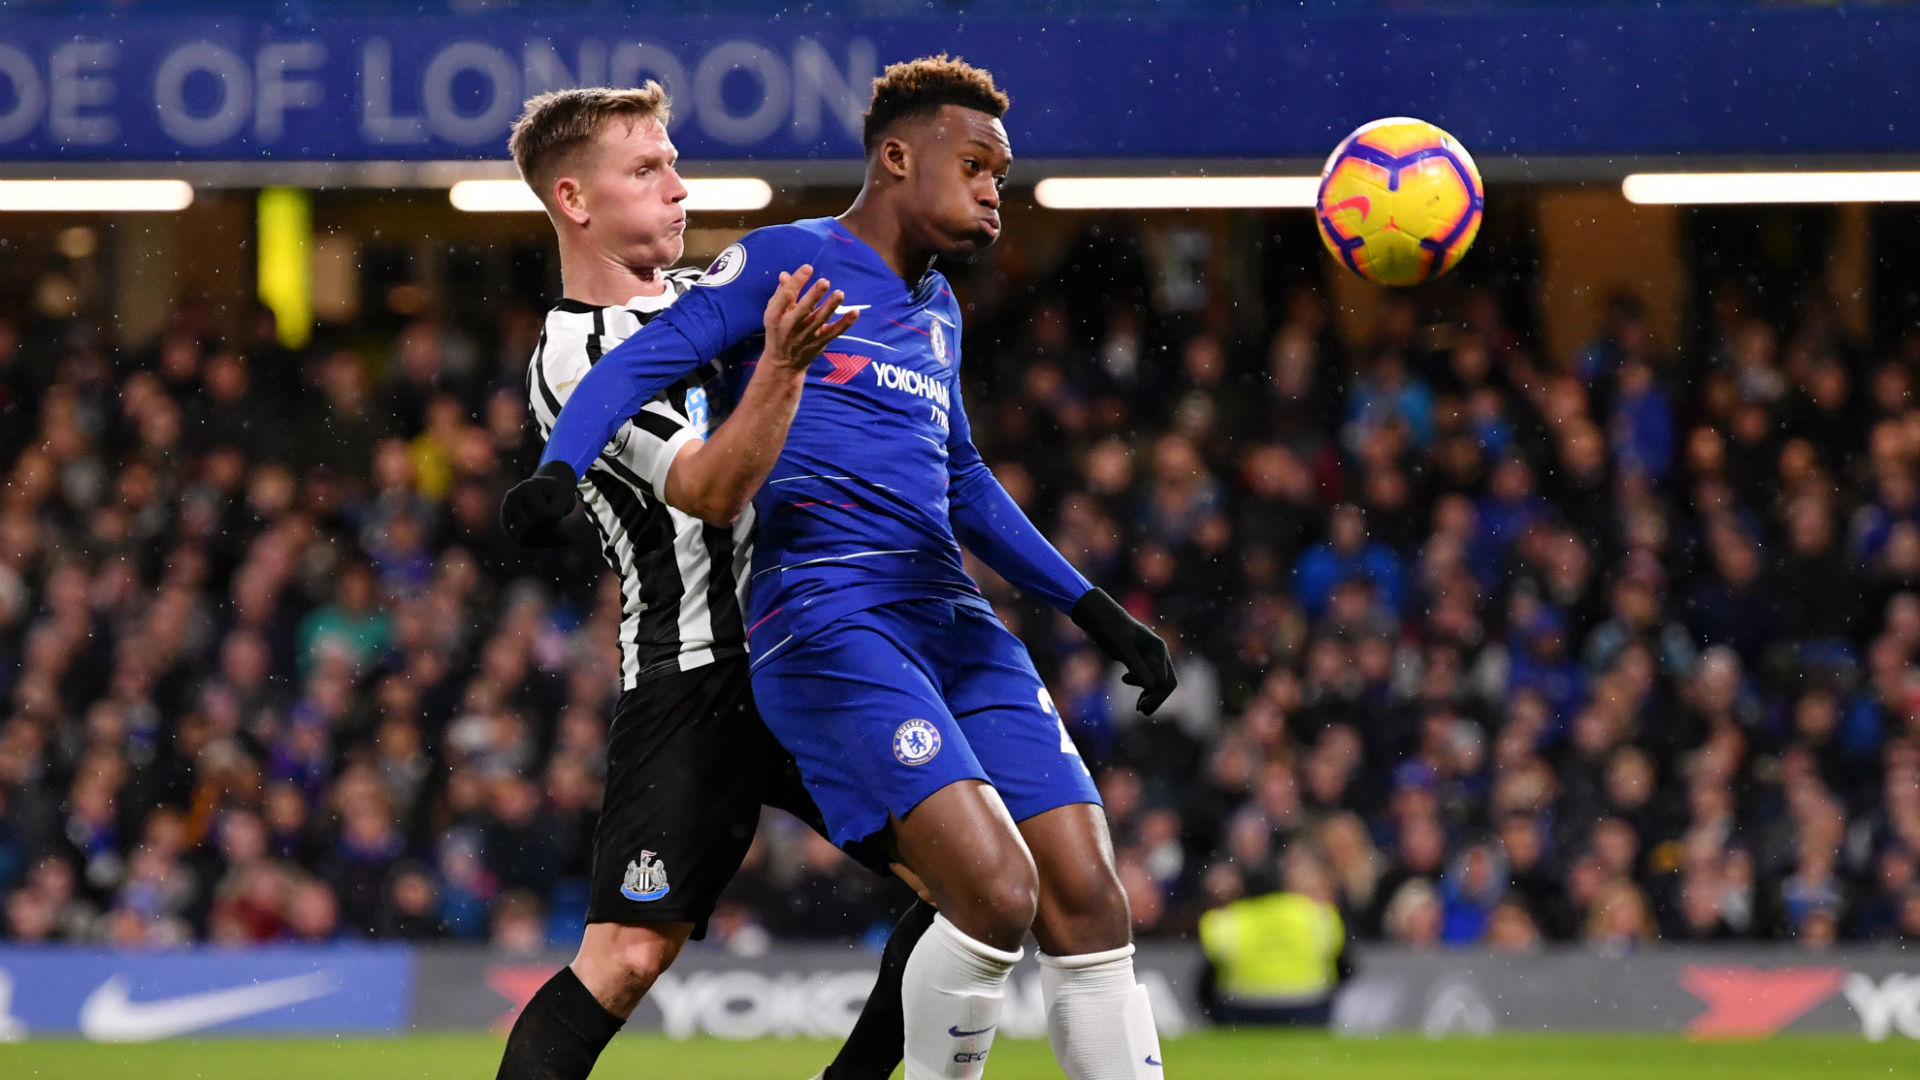 Hudson-Odoi will be at Chelsea's level soon, says Sarri